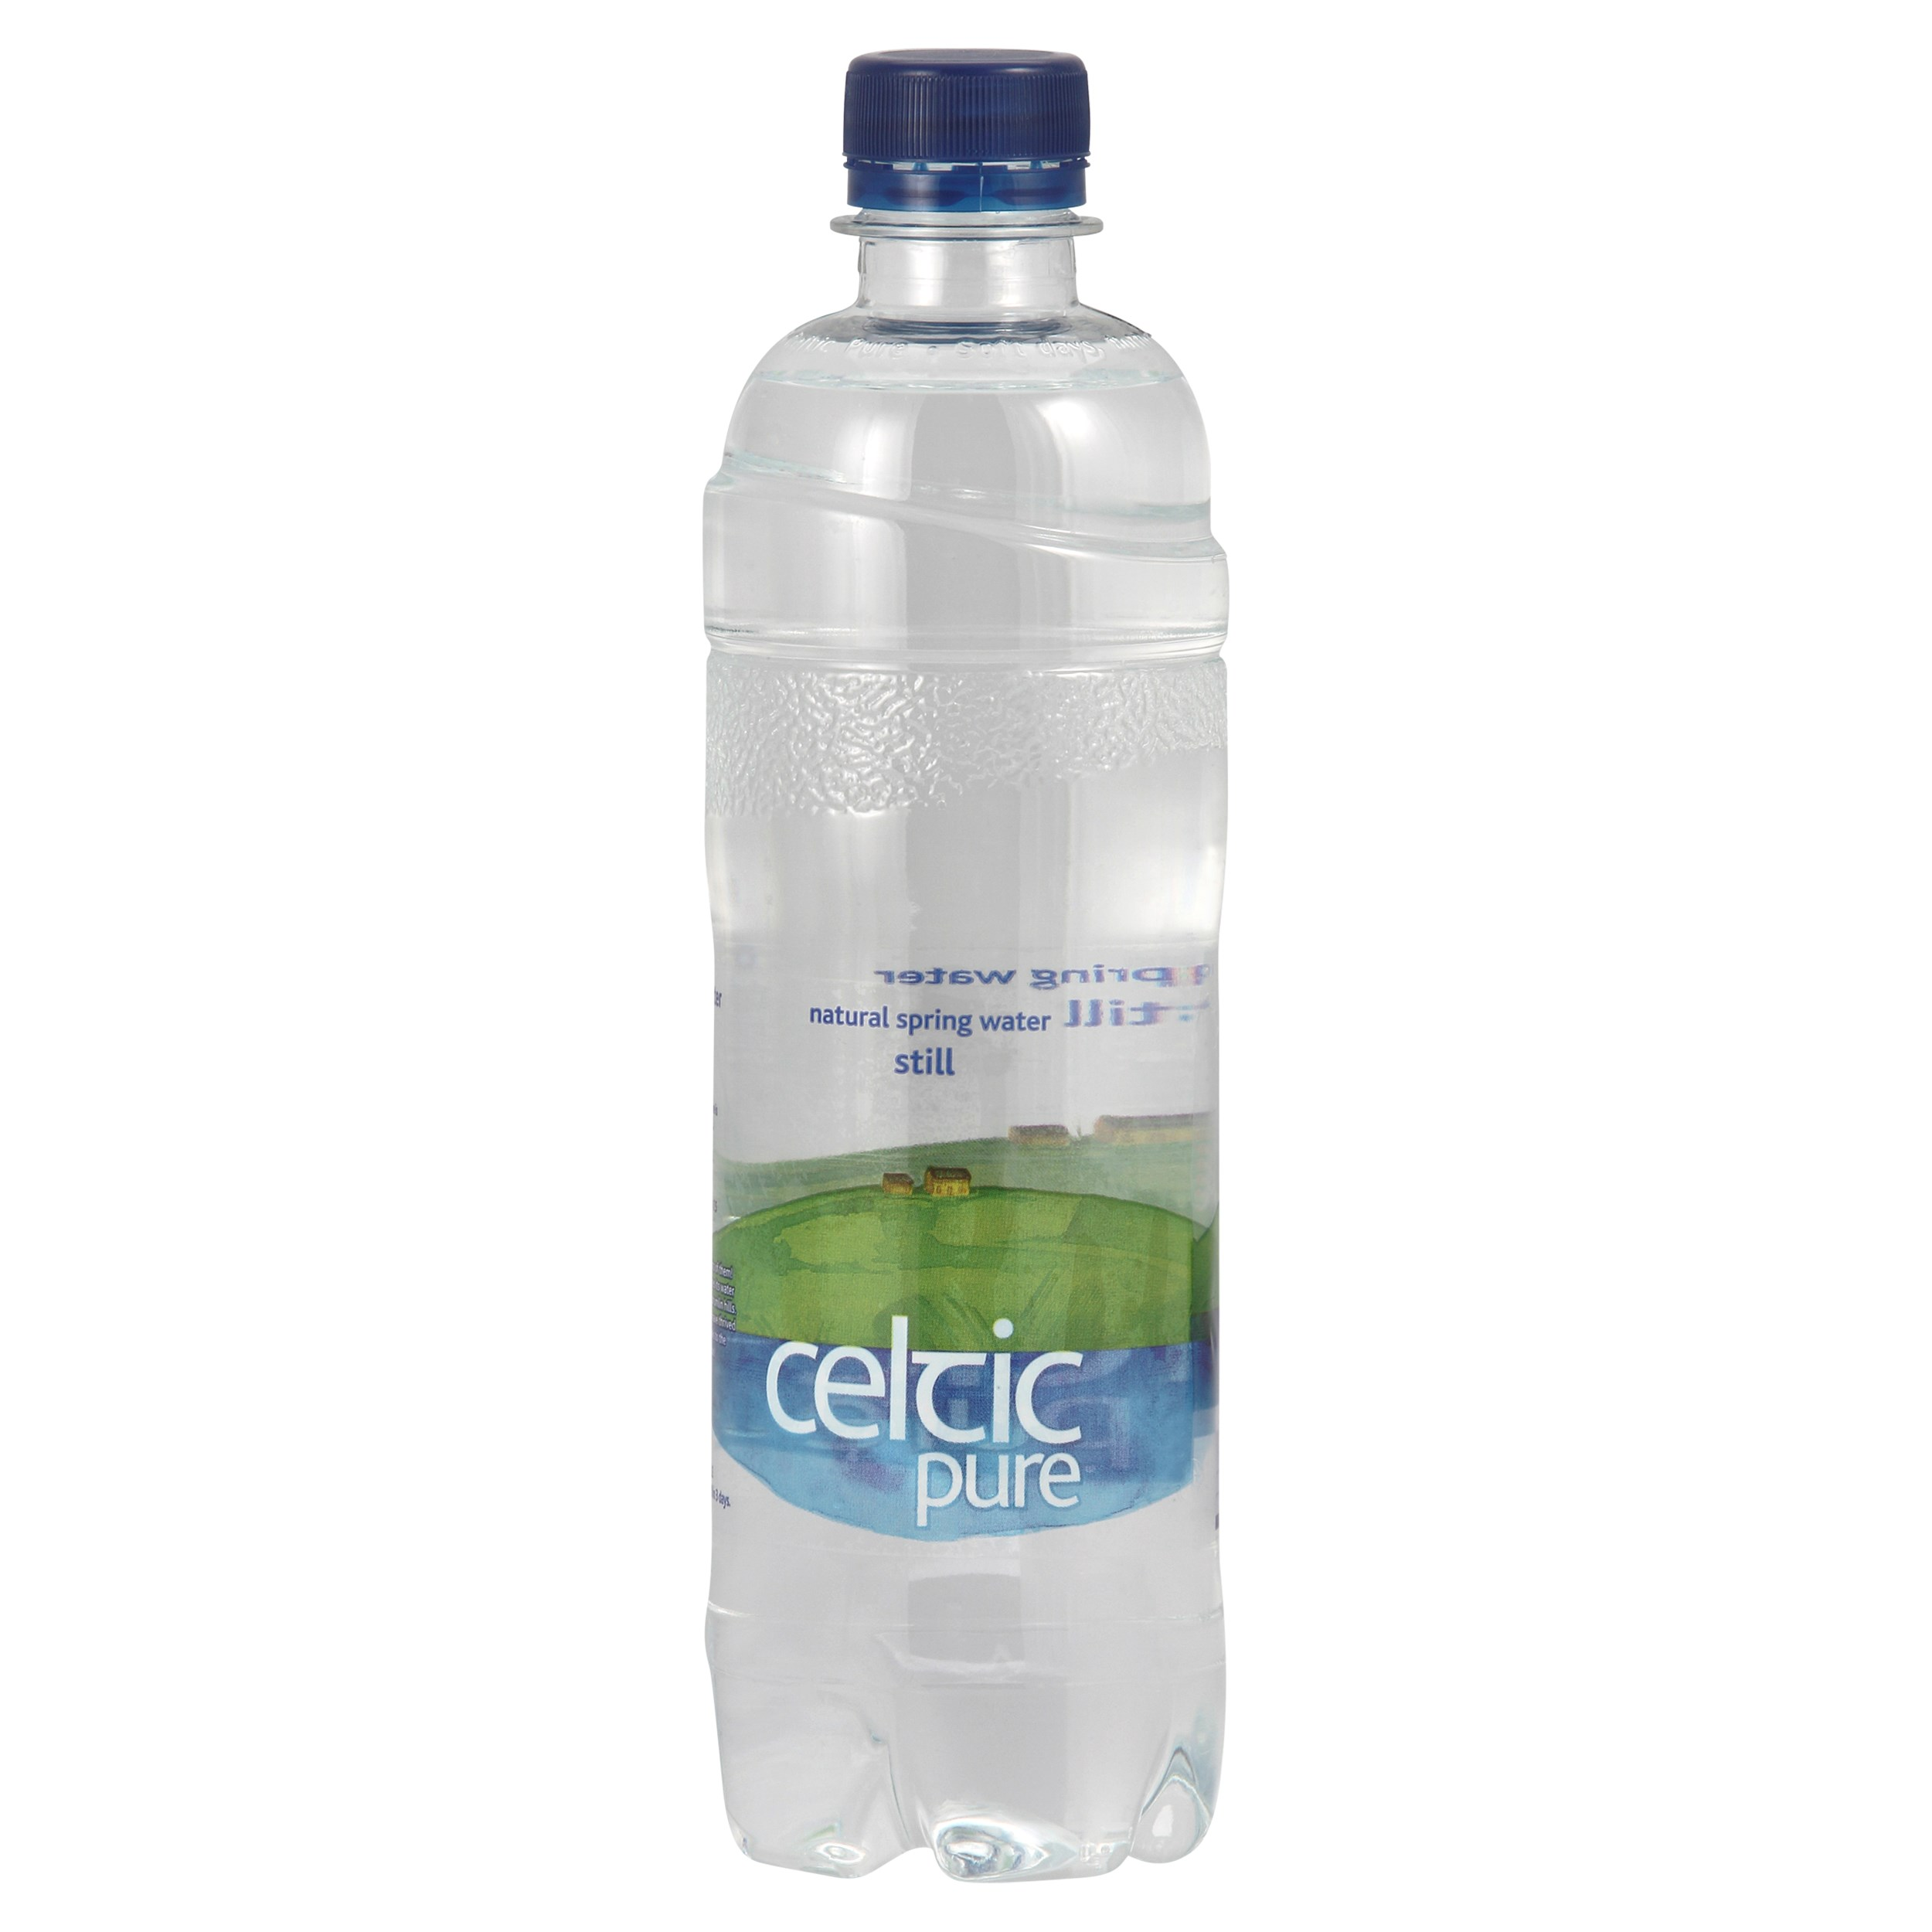 Celtic Pure  Natural Spring Still Water - 500ml